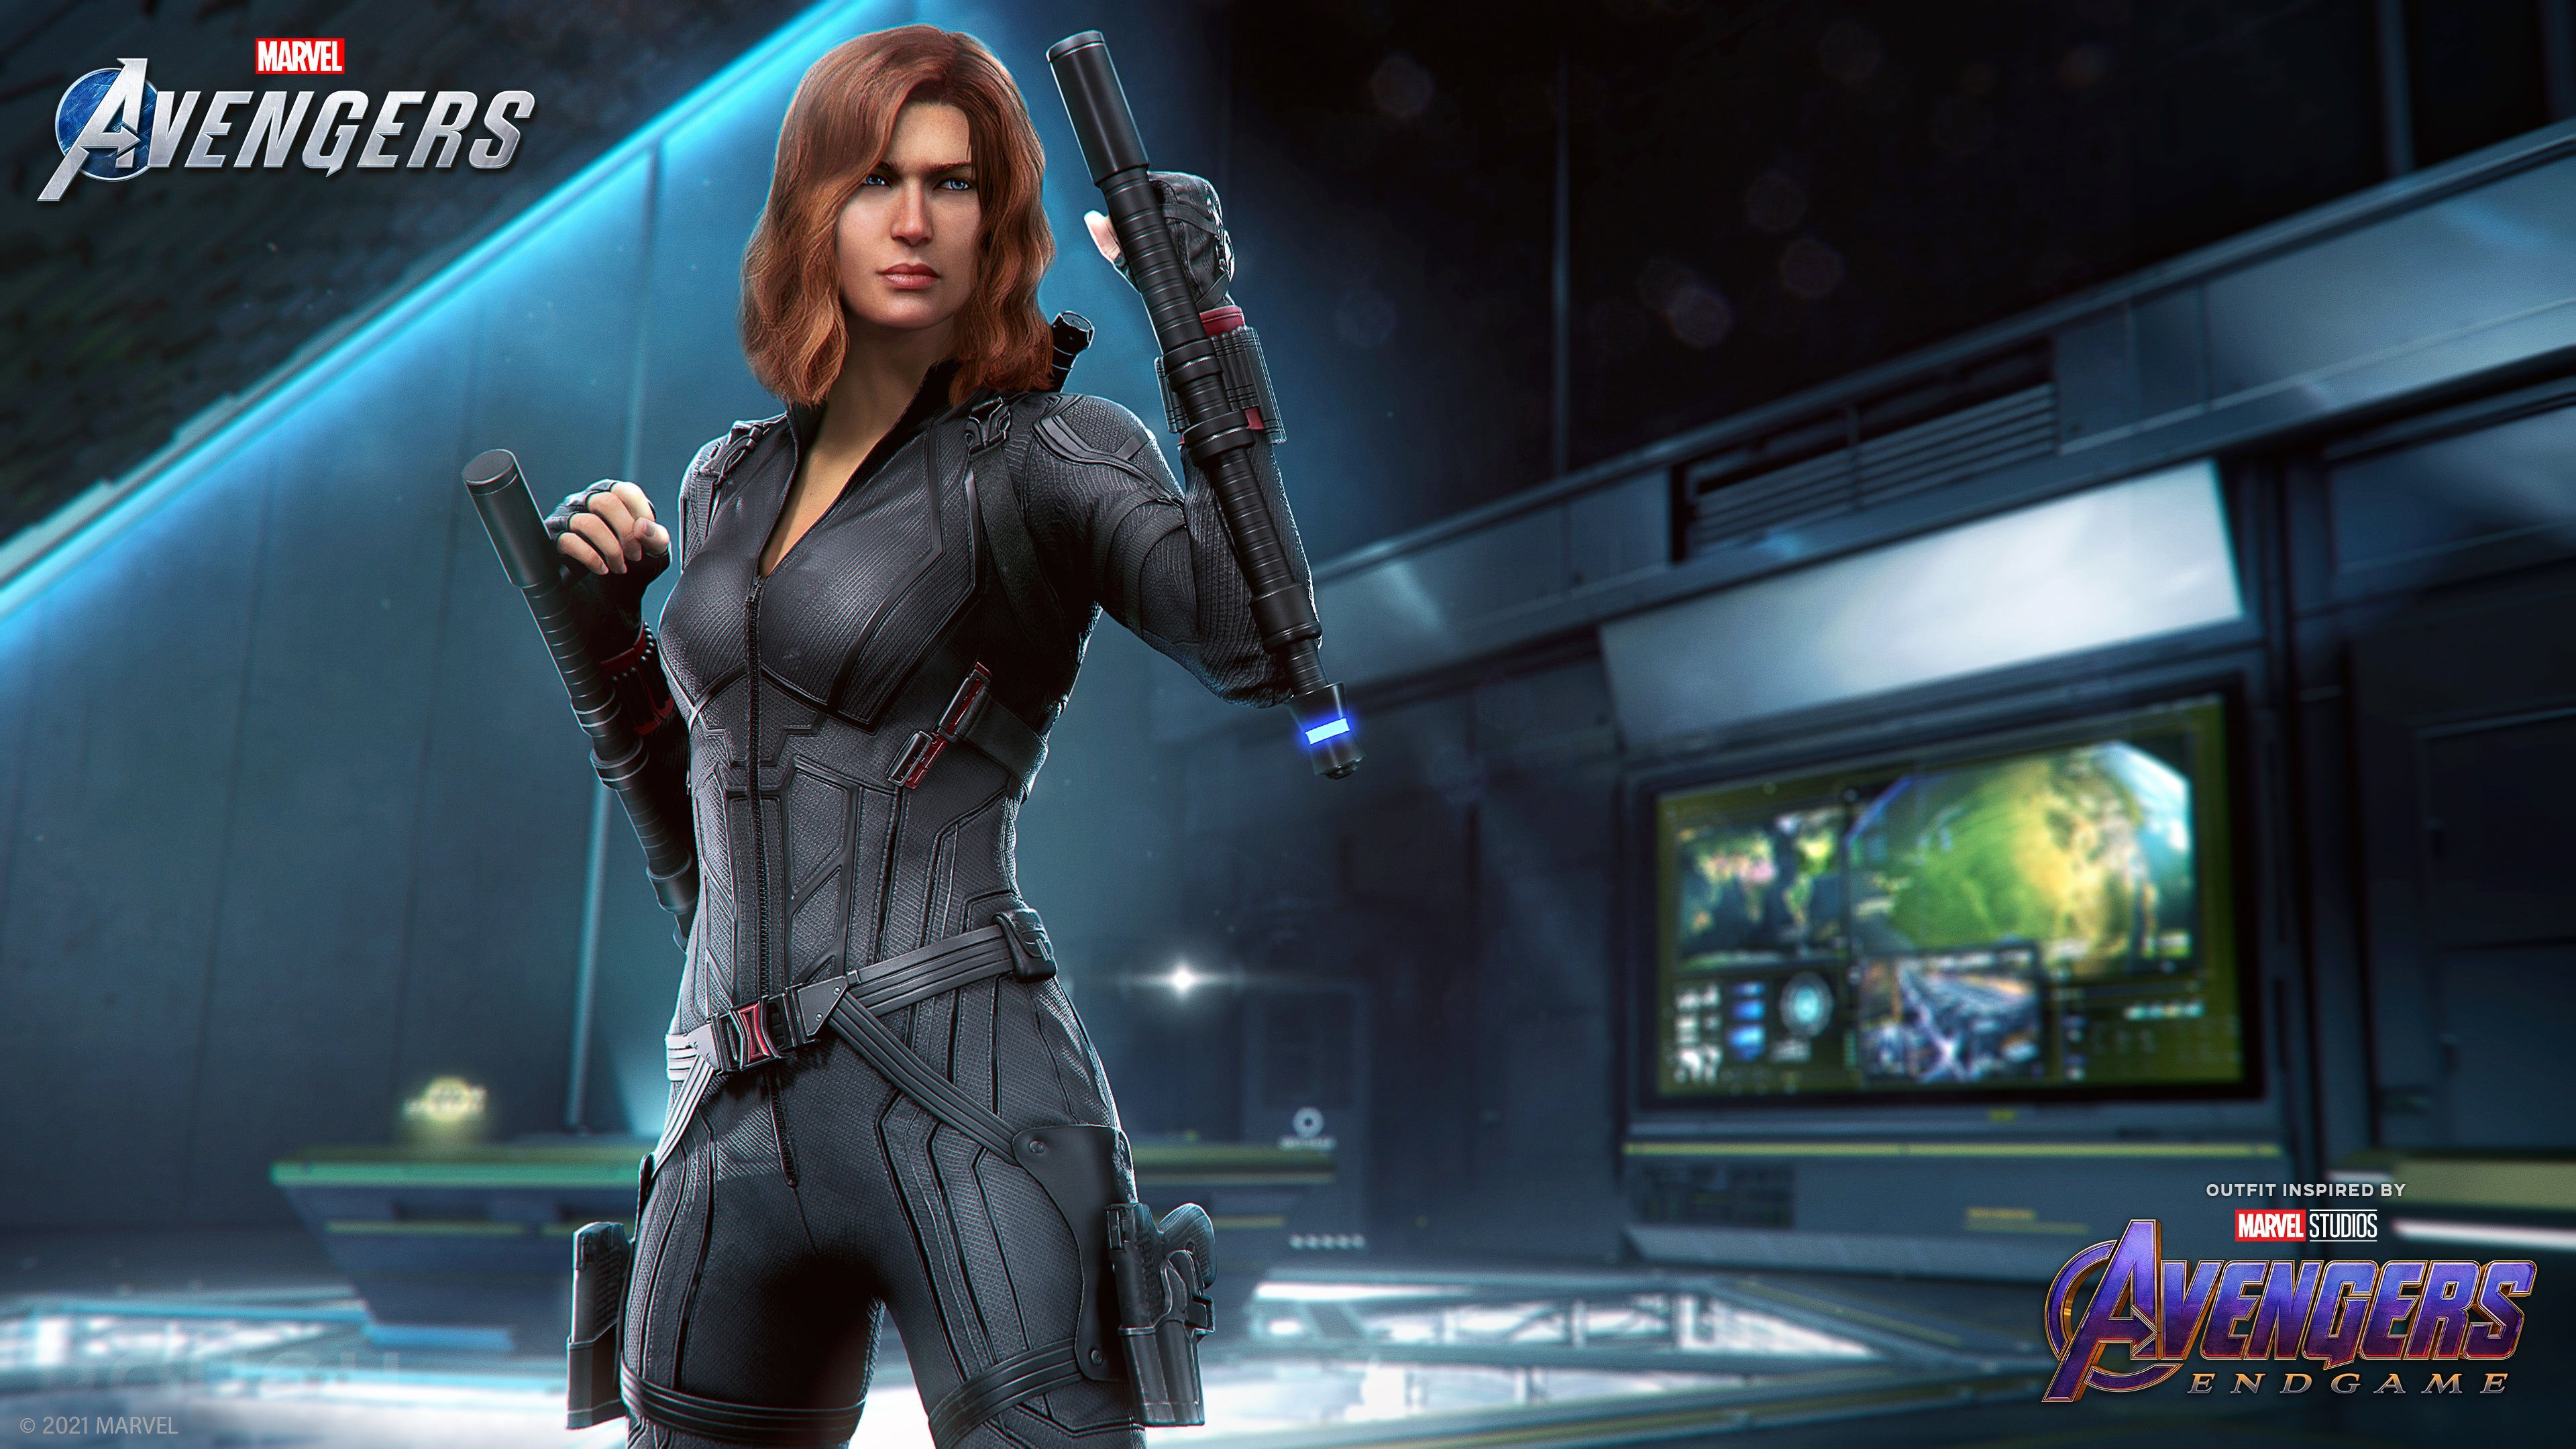 Concept art of Black Widow in her Marvel Studios' Avengers Endgame Outfit. She's wearing a black tactical zip-up suit, and her belt has her iconic Black Widow emblem - a red hourglass - on the buckle. She holds up her signature batons - she's ready for a fight.